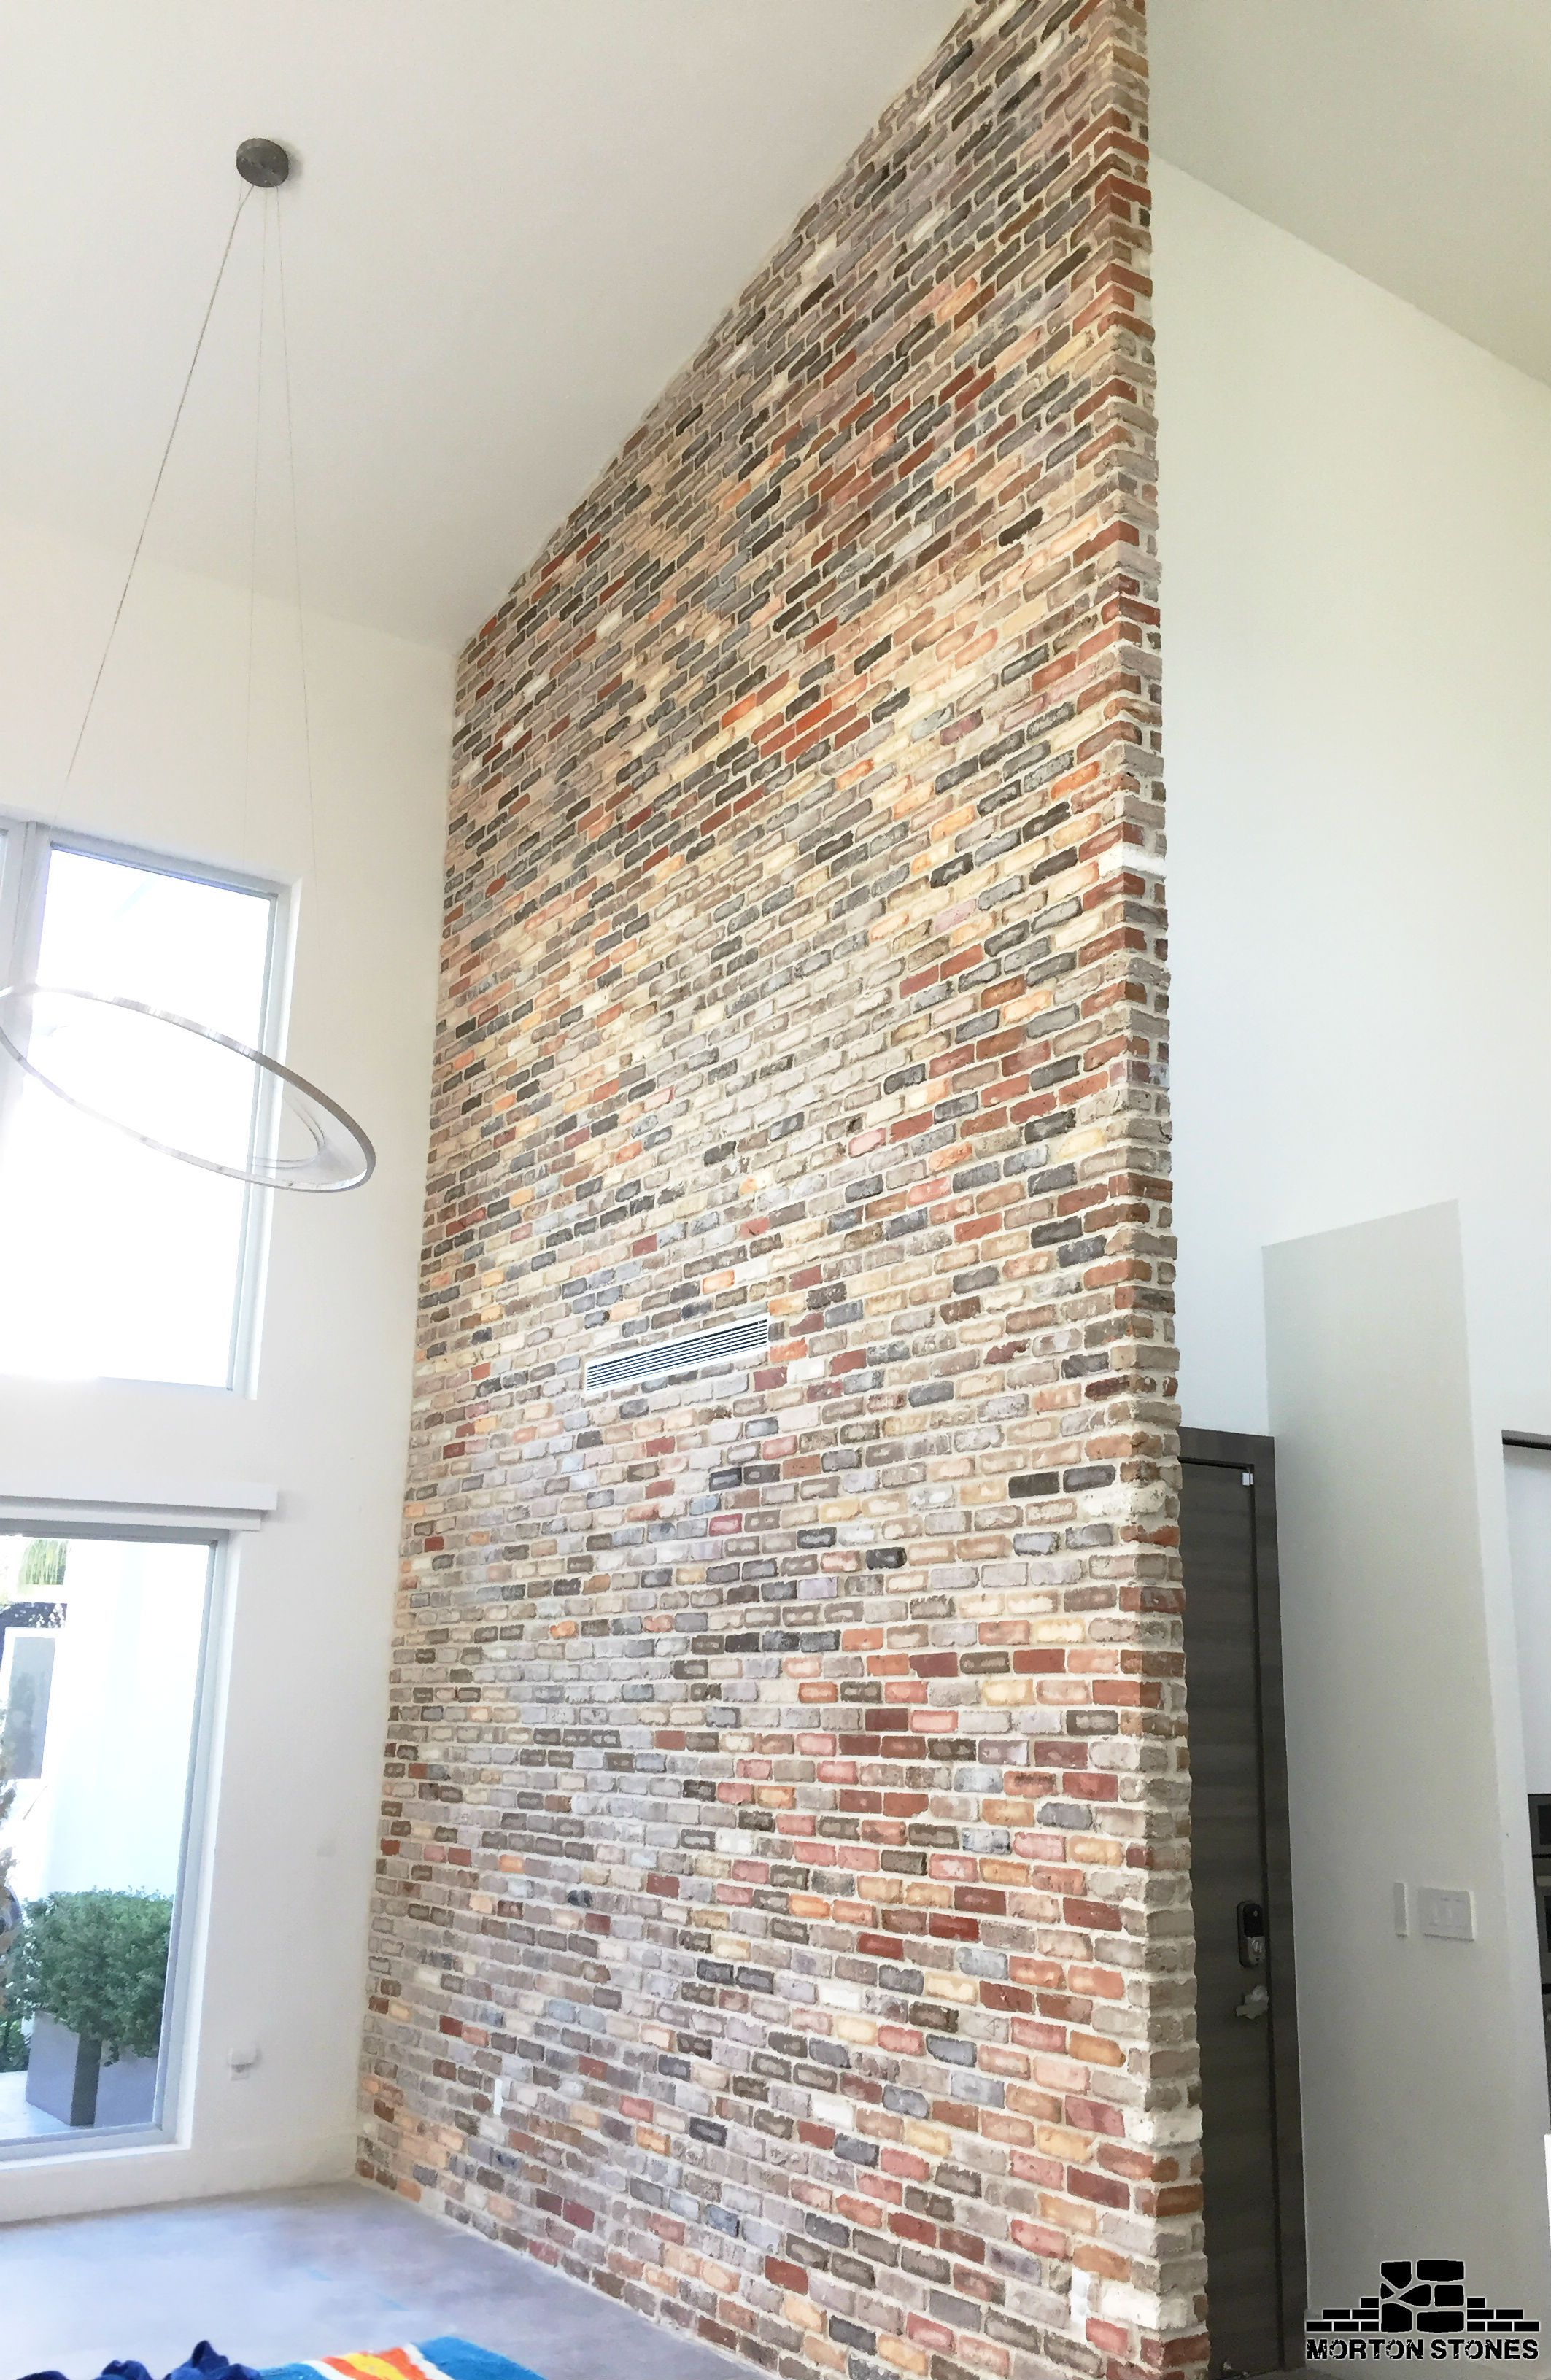 A Large And Trendy Brick Accent Wall In A Home With High Ceilings Mortonstones Brick Tiles Rustic H House Decor Rustic Rustic House Rustic Western Decor